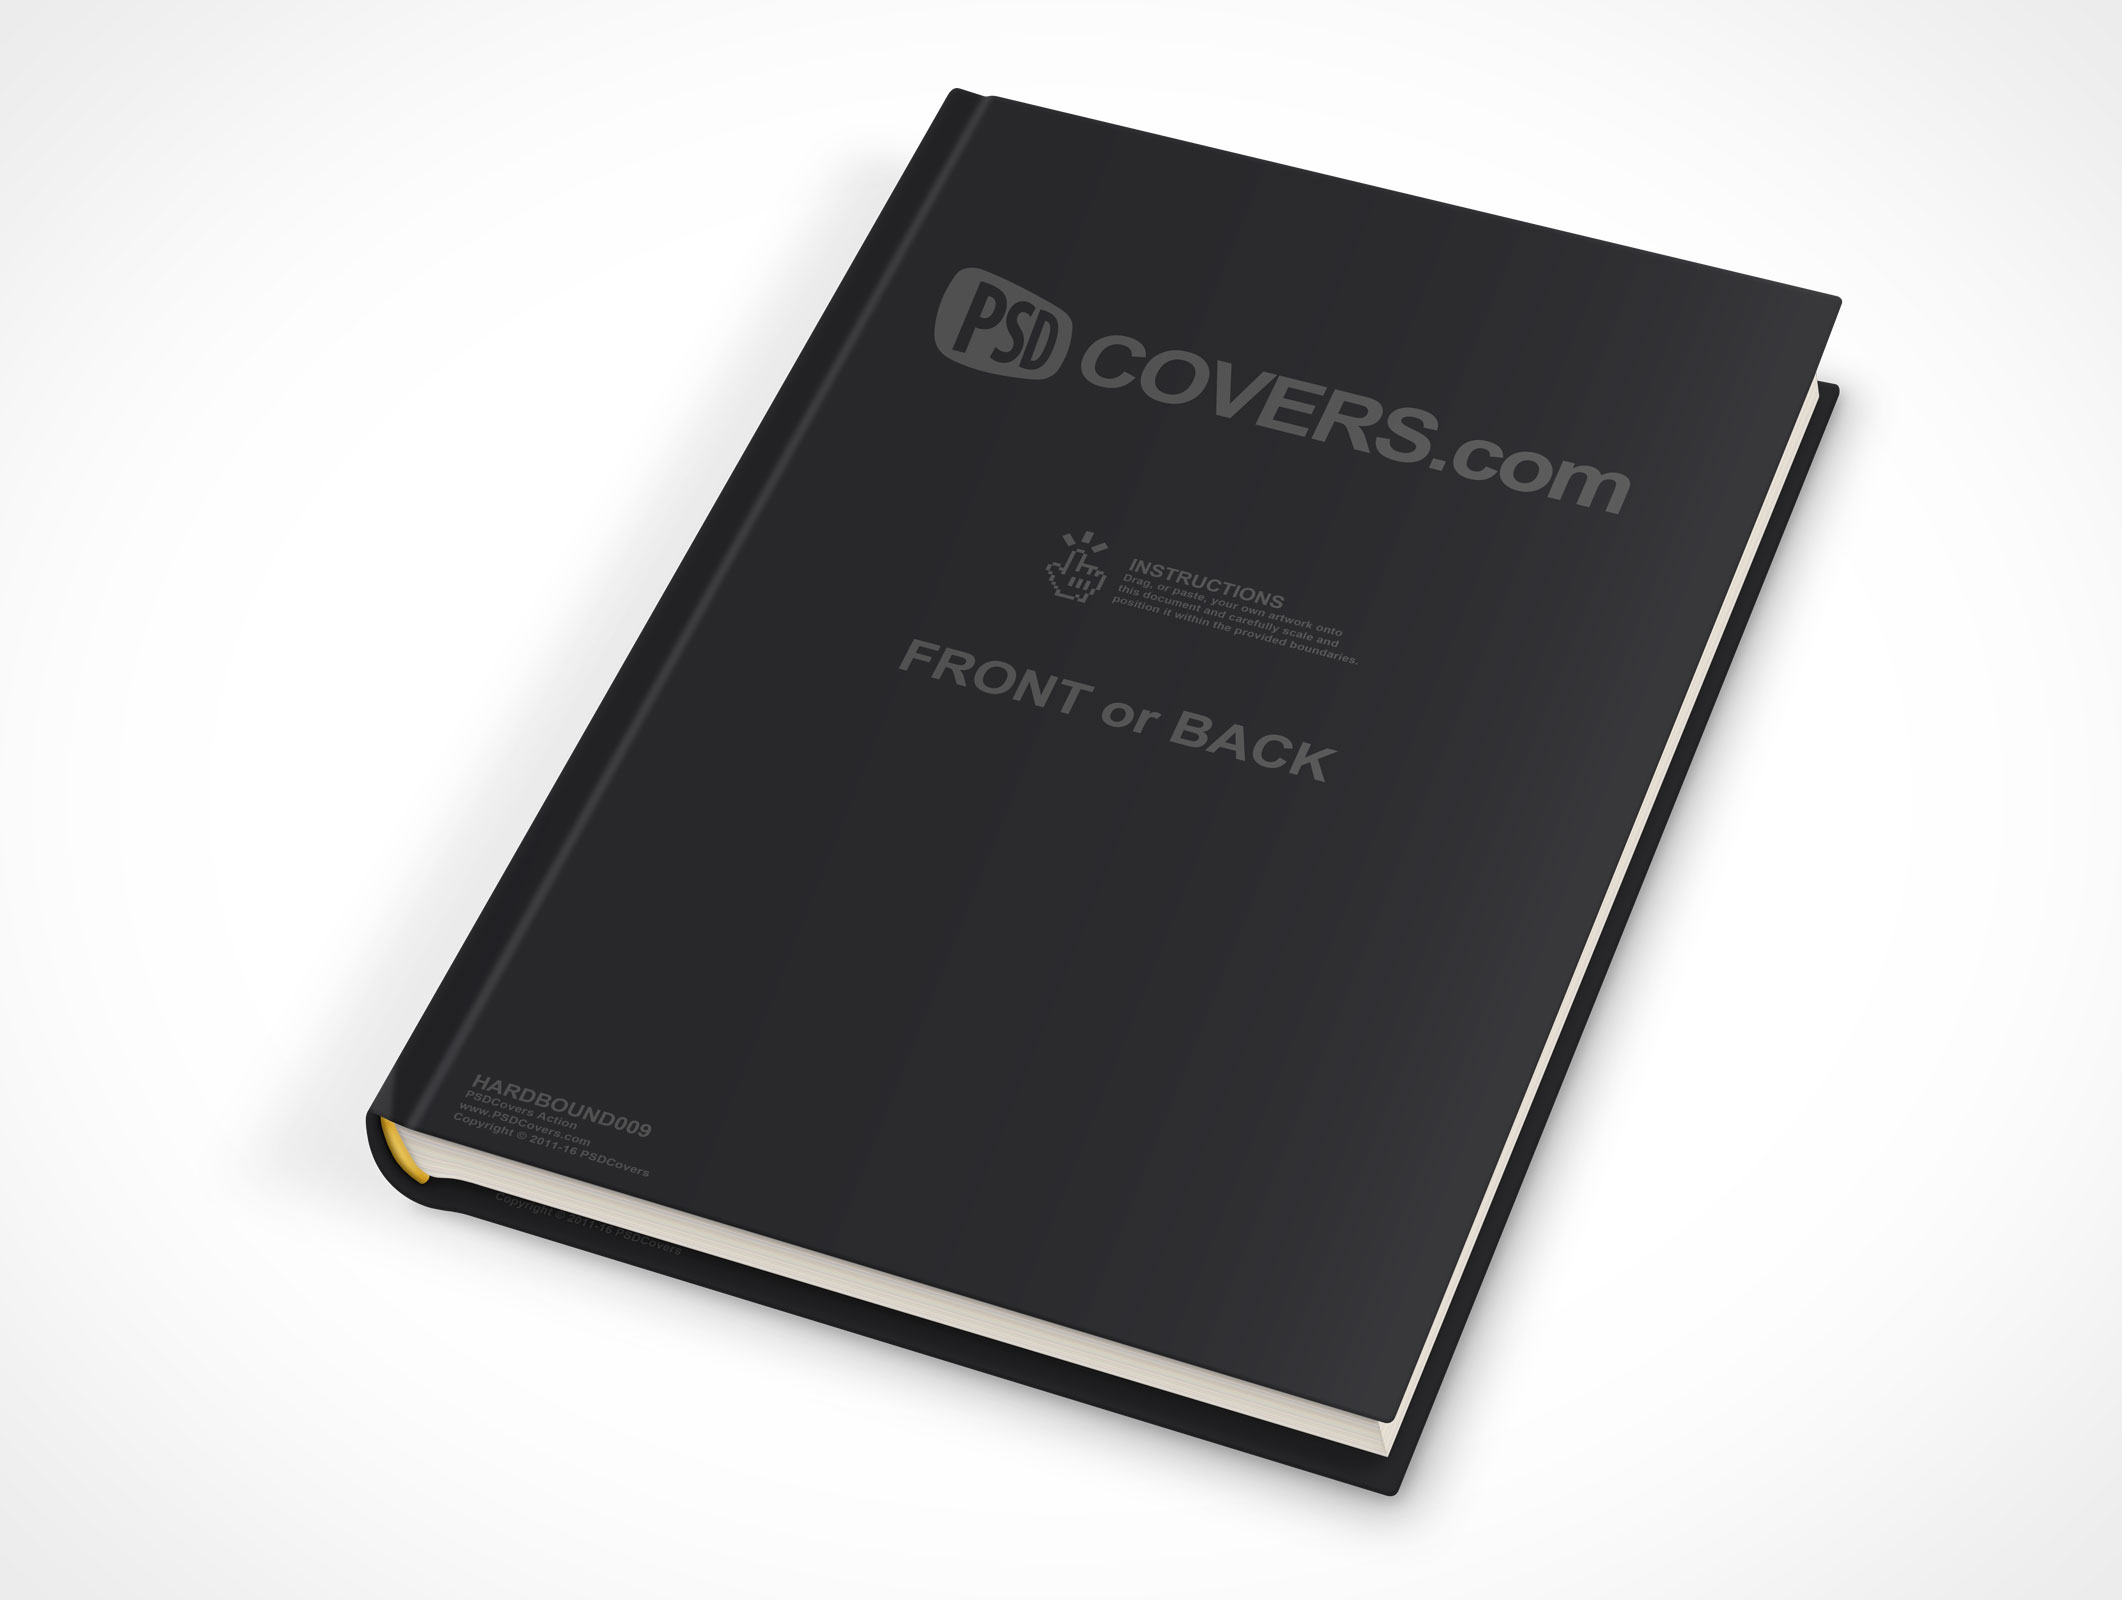 psdcovers laying down hardbound book mockup